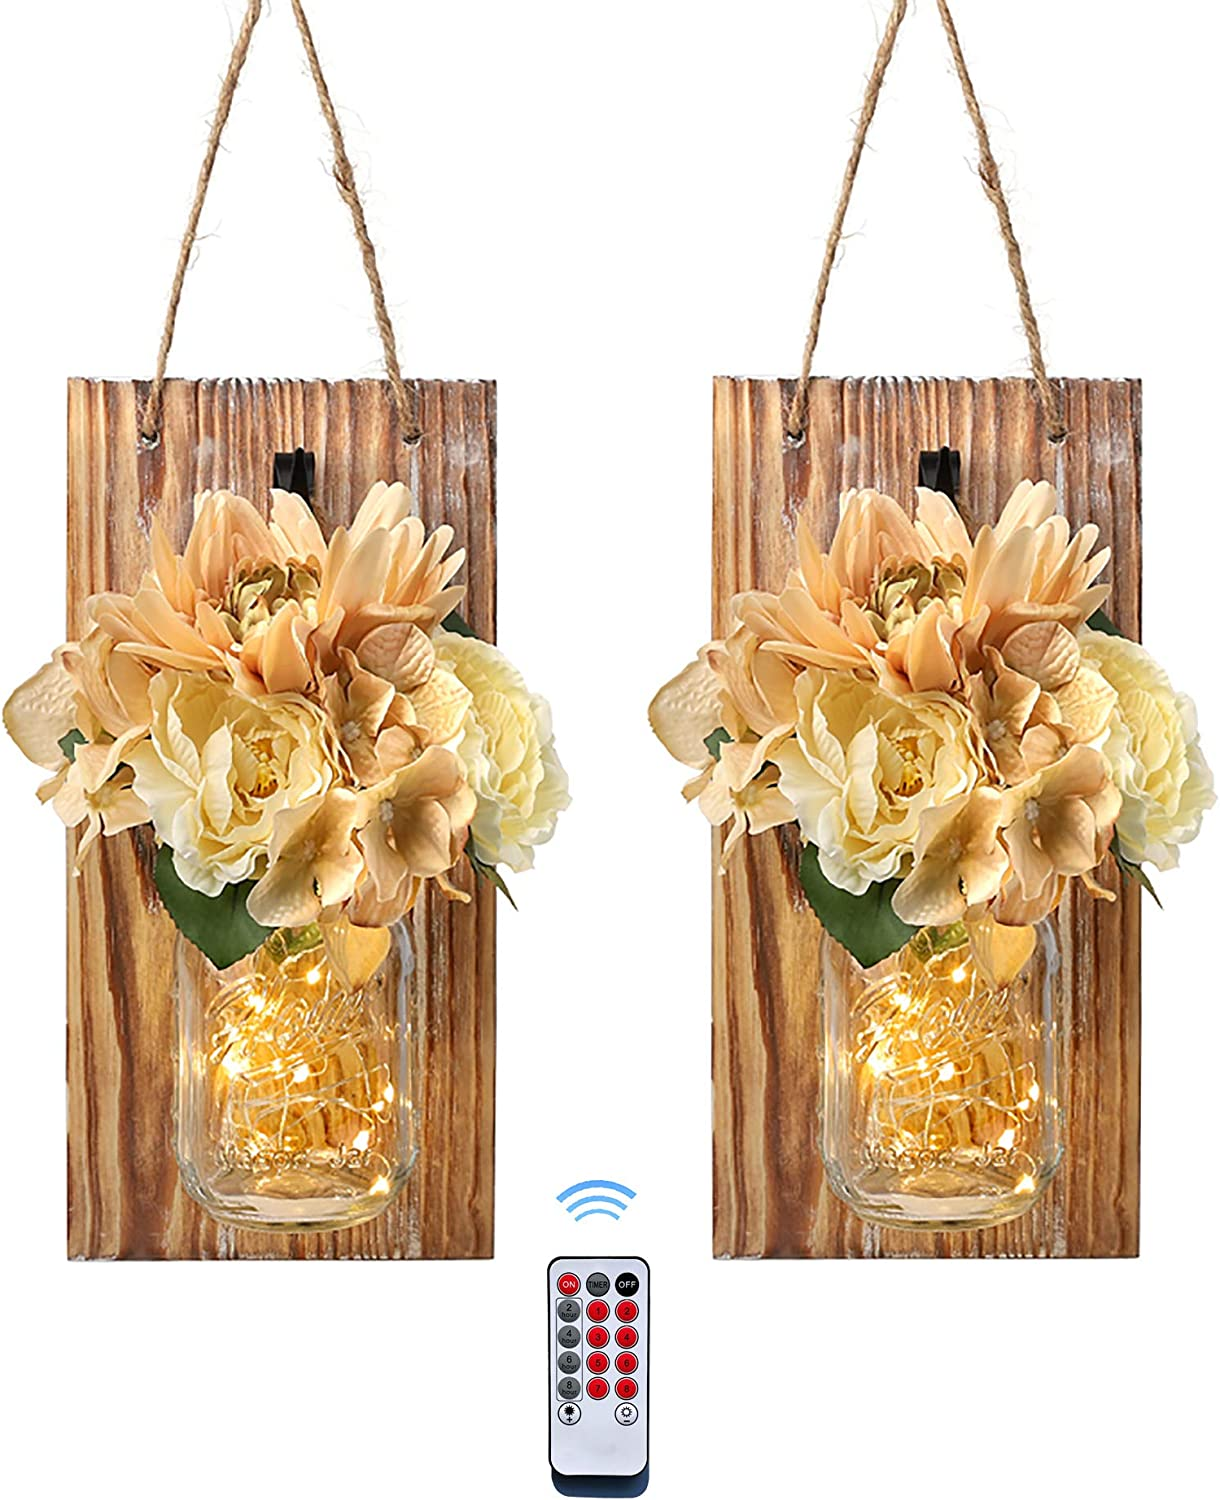 Besuerte Mason Jar Decor Wall Hanging with Remote Country Farmhouse Style Wall Decorfor Home Living Room with 6-Hour Timer Fairy String Lights &Flowers,Set of 2(Large, Brown)